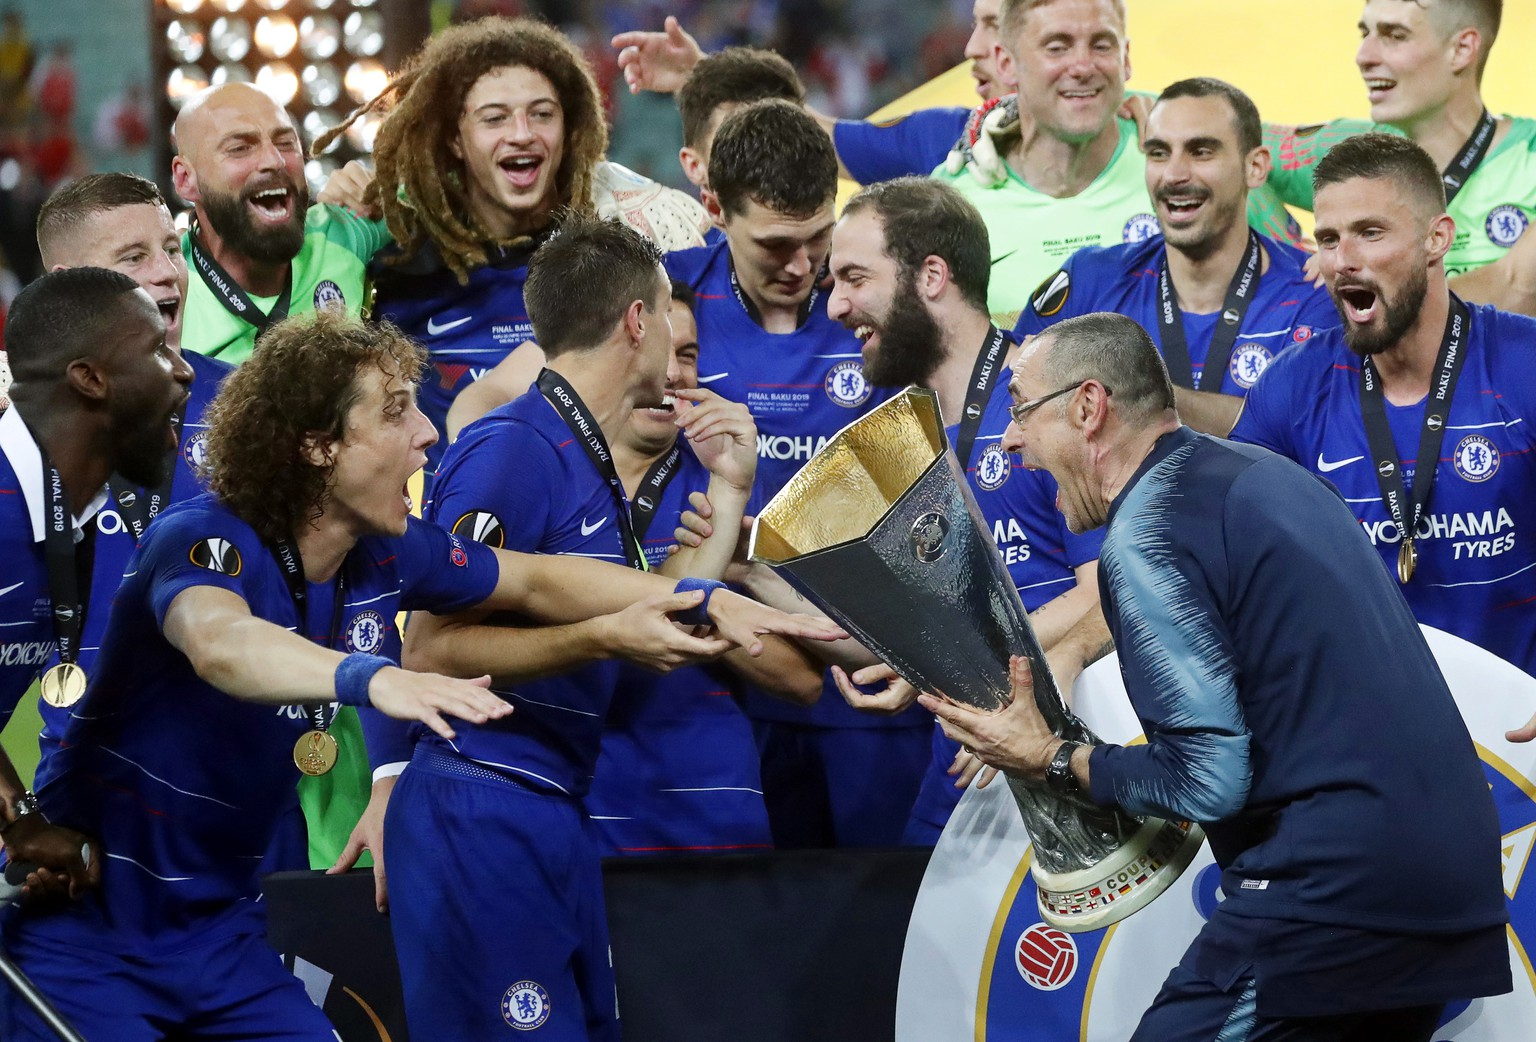 epa07611407 Chelsea's manager Maurizio Sarri (R) and David Luiz (L) celebrate with the trophy after winning the UEFA Europa League final between Chelsea FC and Arsenal FC at the Olympic Stadium in Baku, Azerbaijan, 30 May 2019. Chelsea won 4-1.  EPA/MAXIM SHIPENKOV